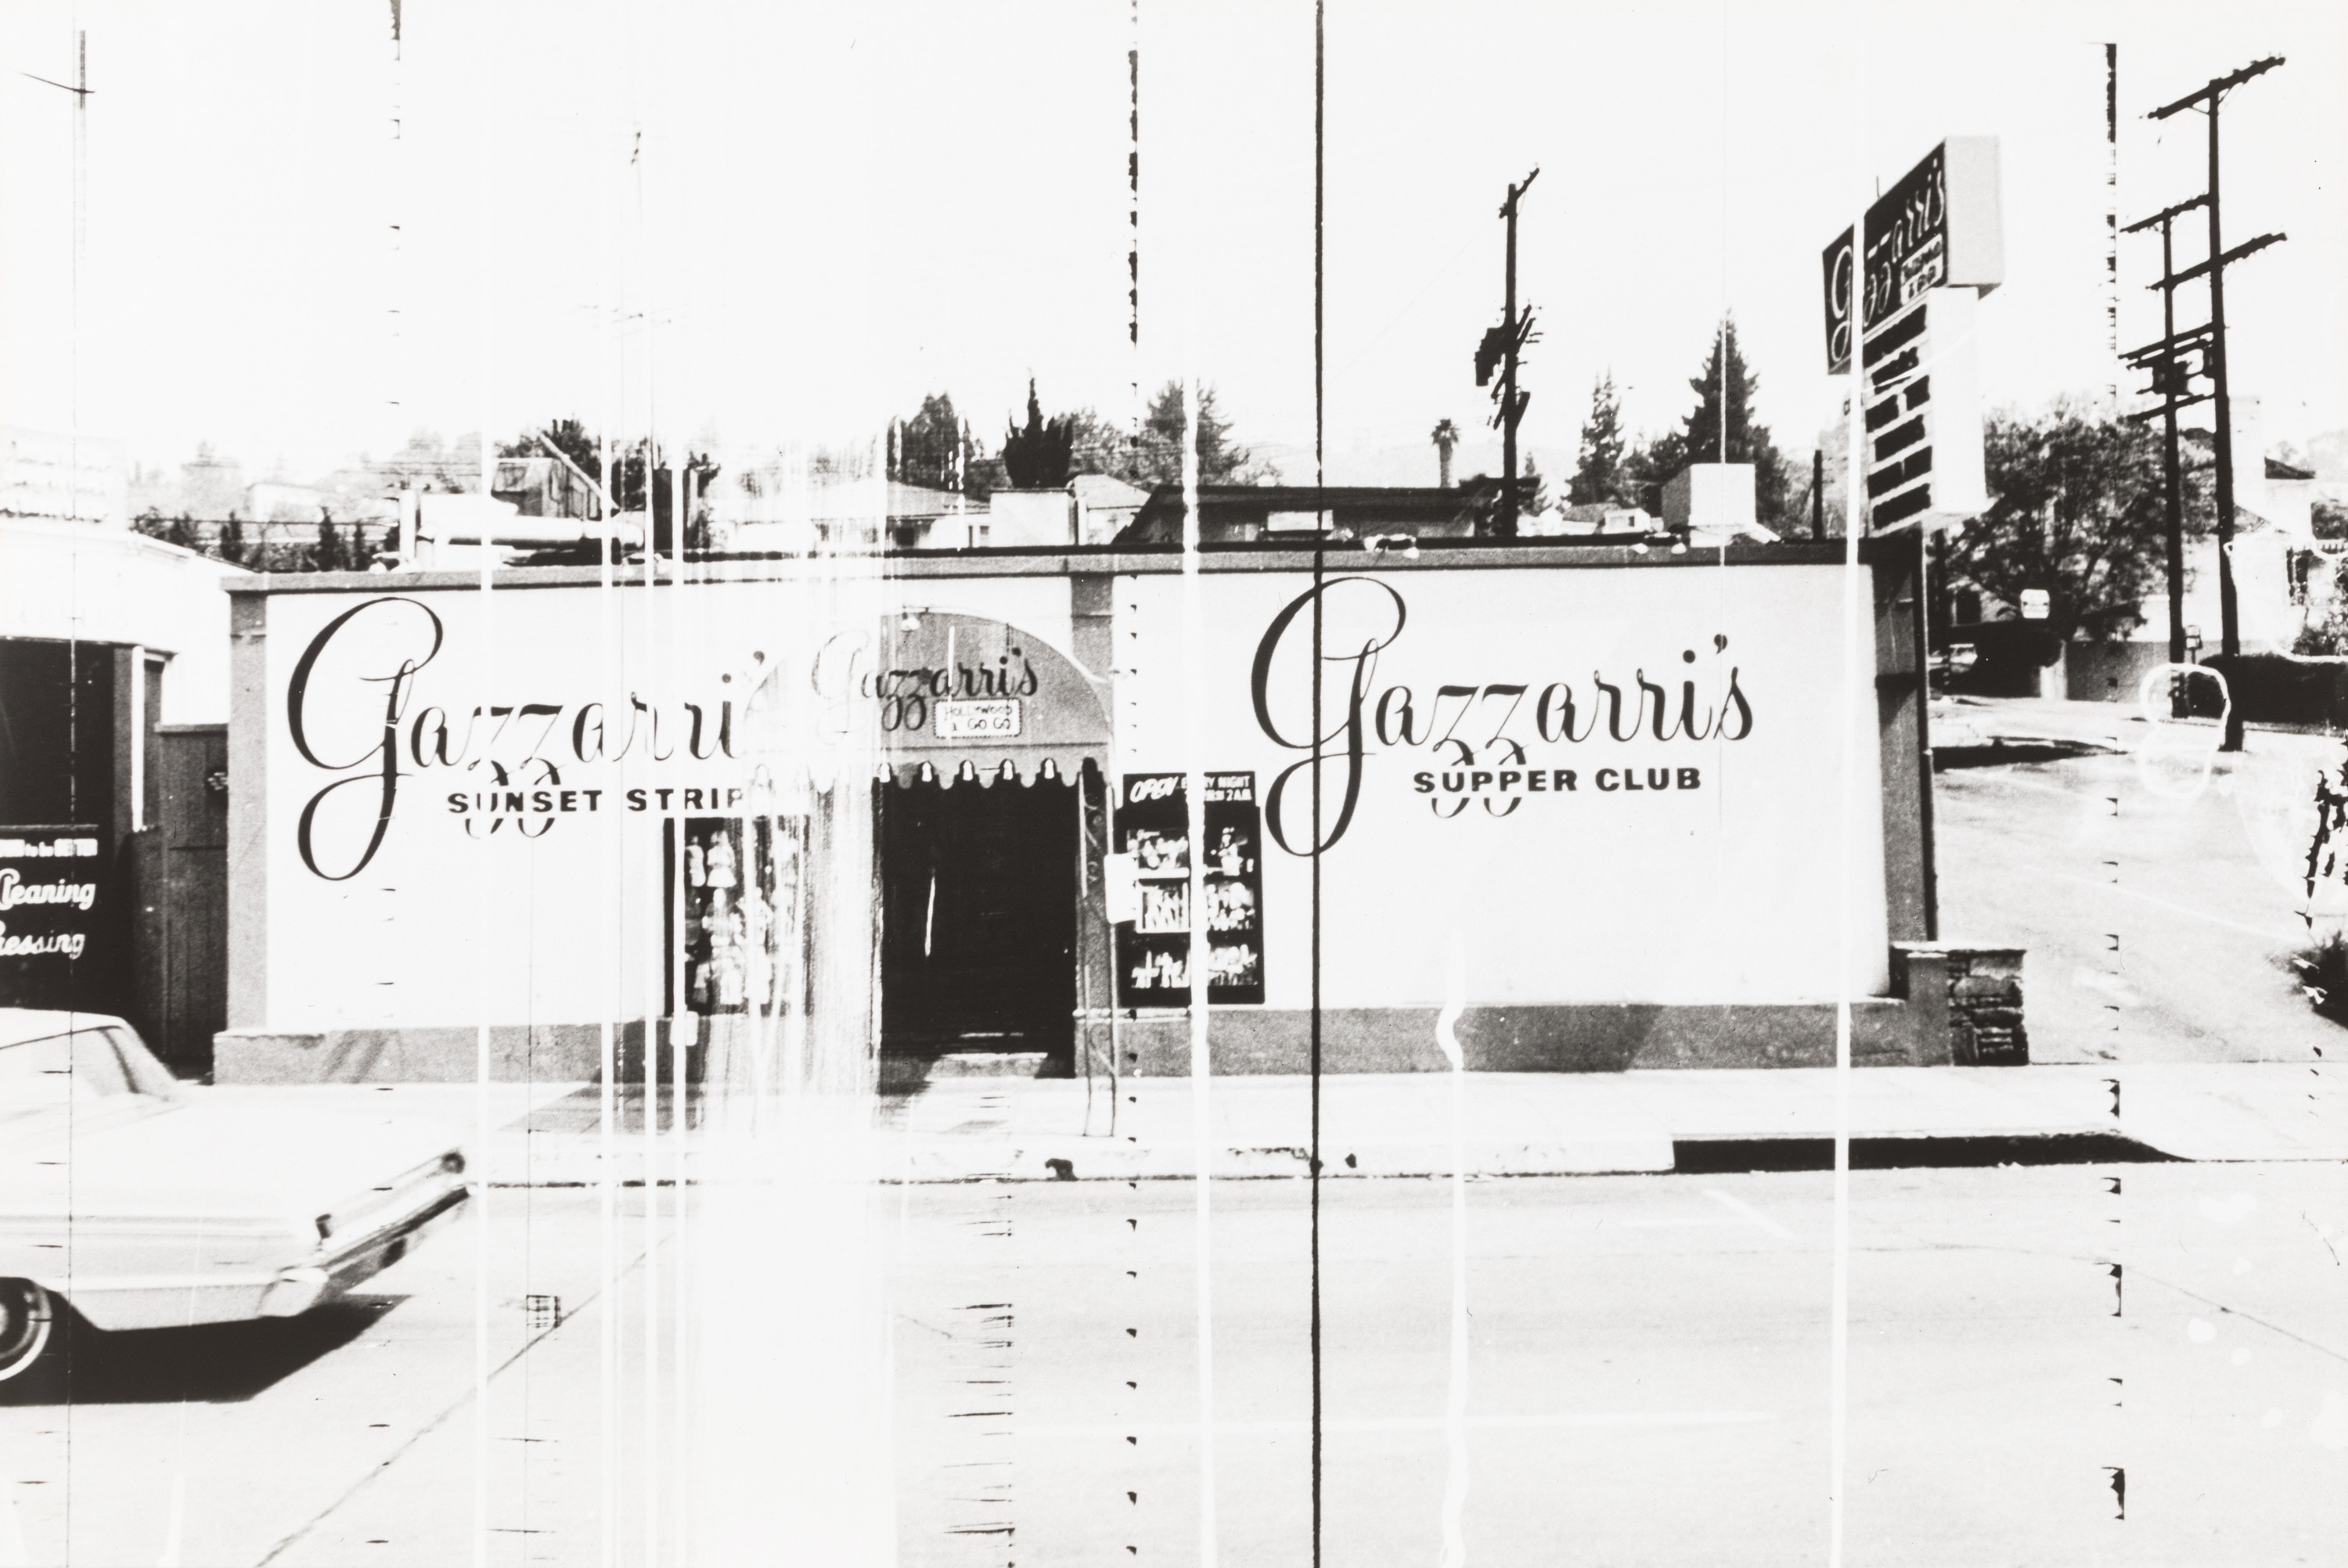 Ed Ruscha, Gazzarri's Supper Club (The Sunset Strip, LA - Portfolio)